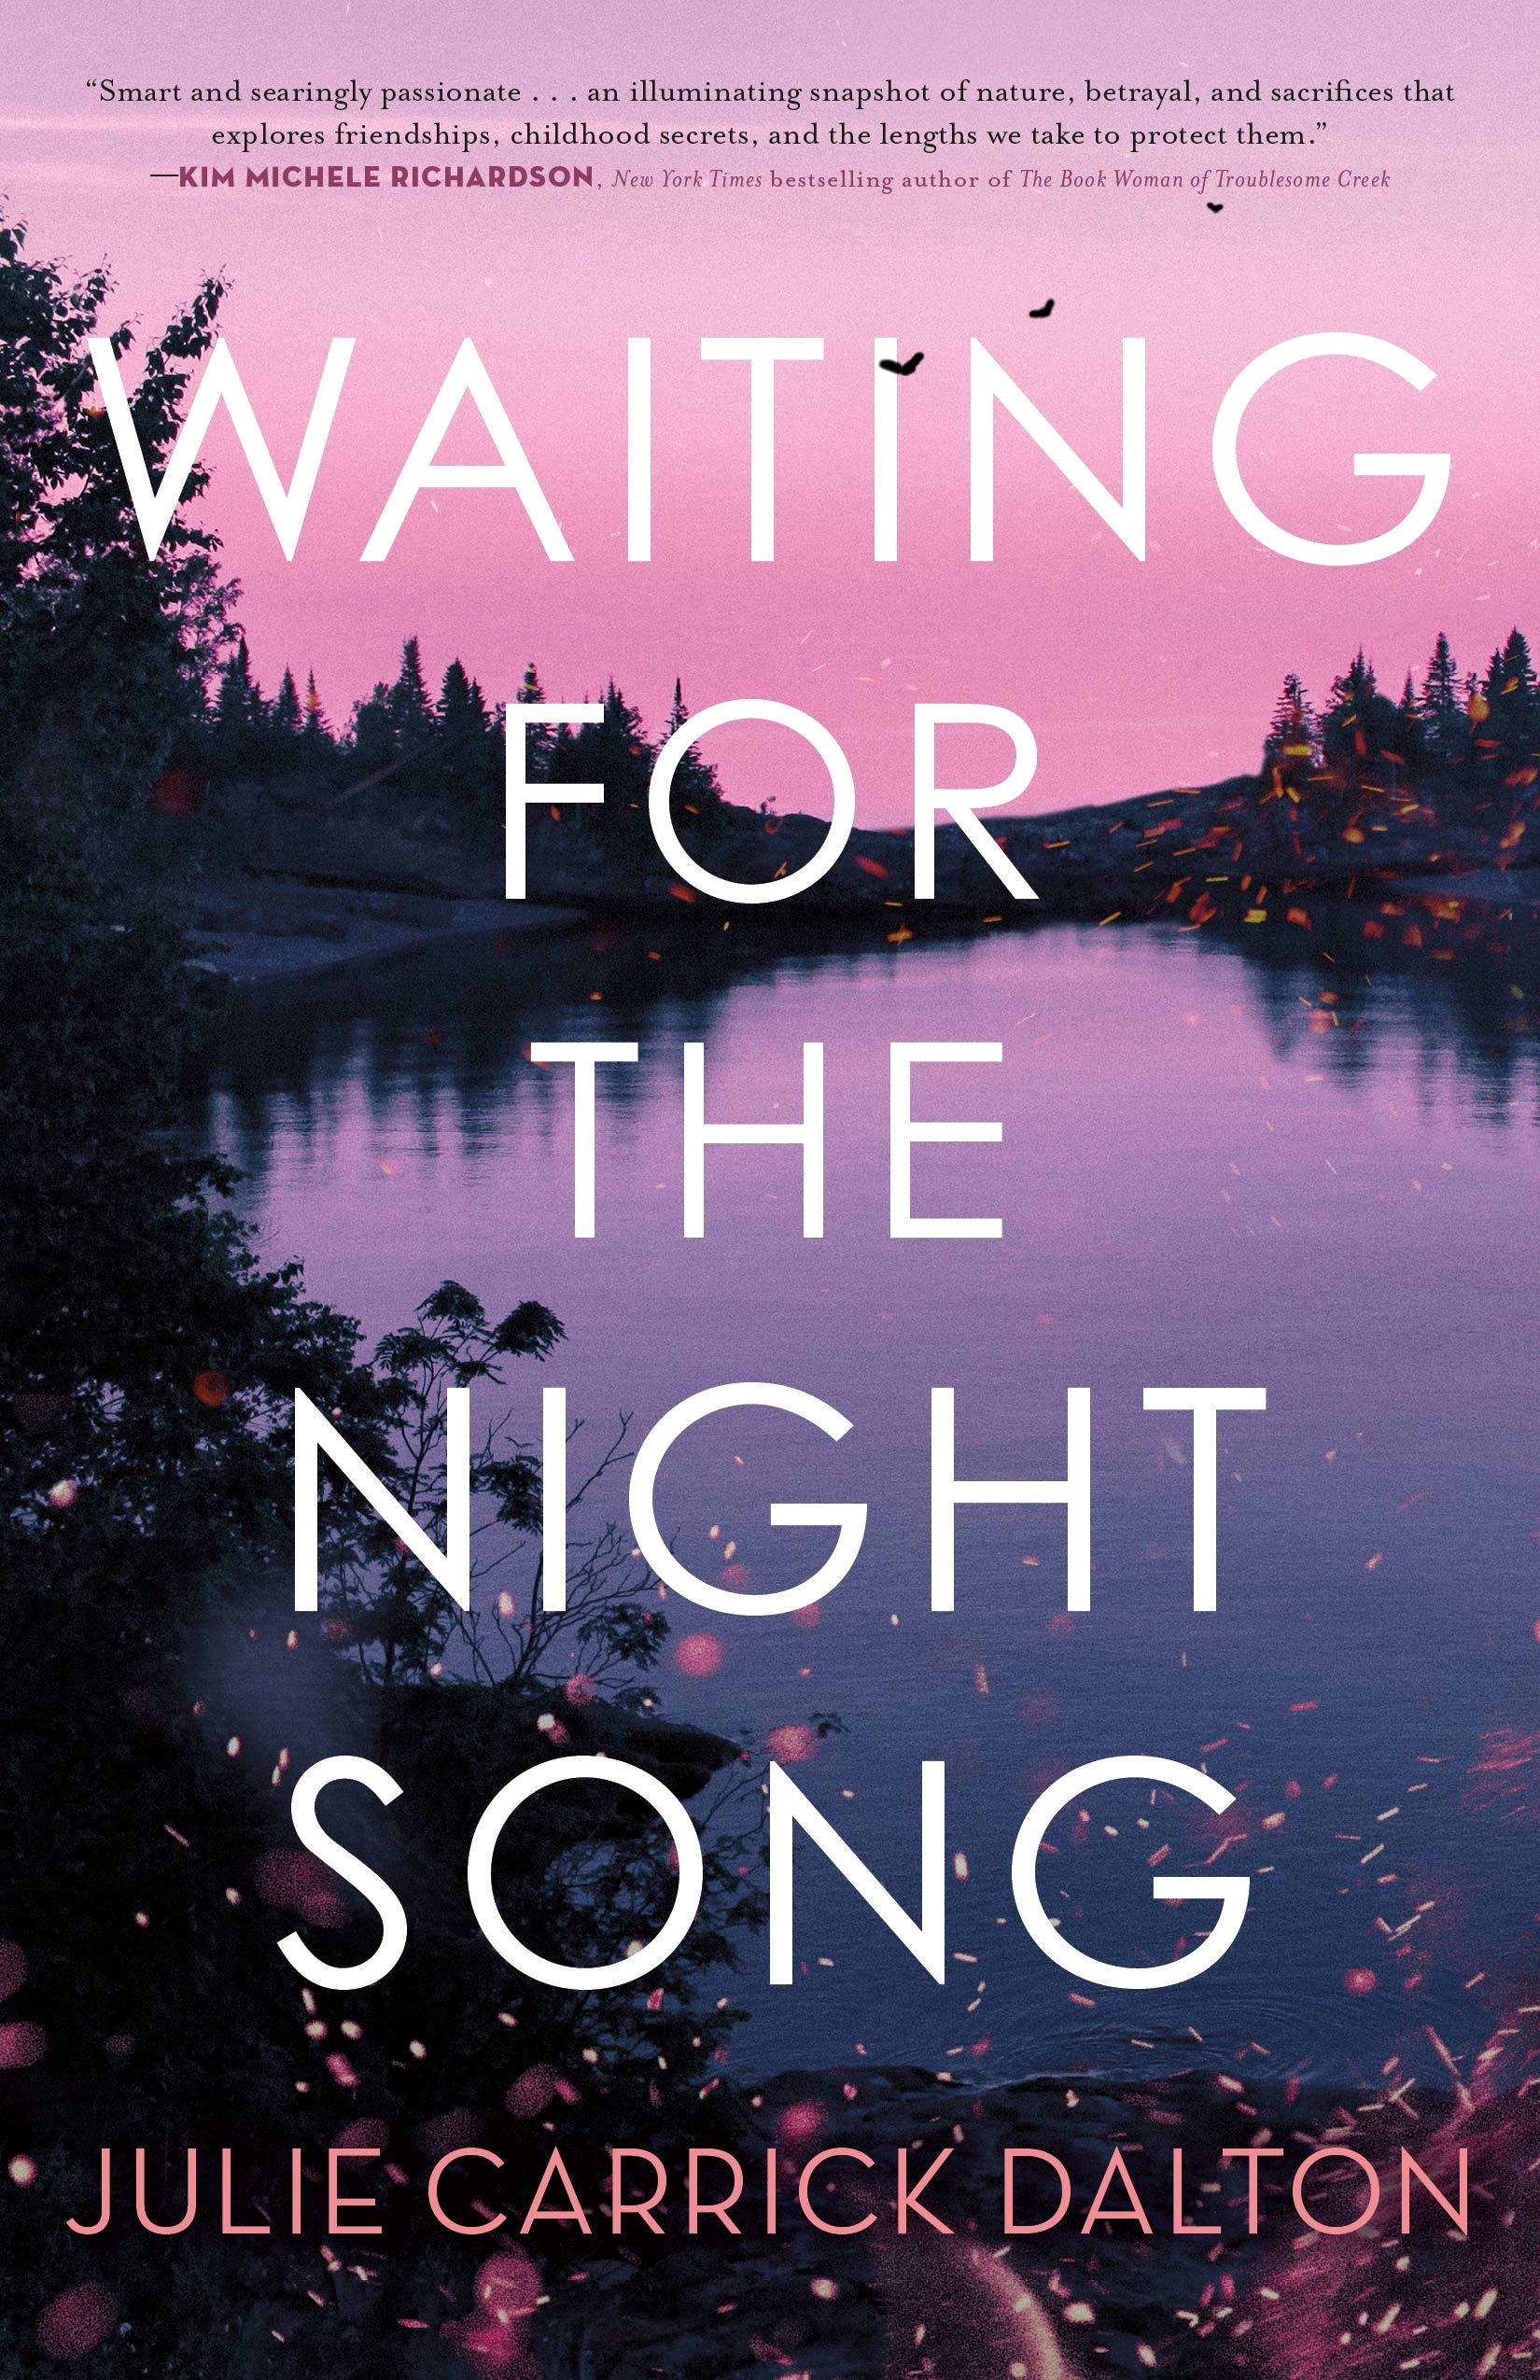 Book cover of'Waiting for the Night Song' by Julie Carrick Dalton